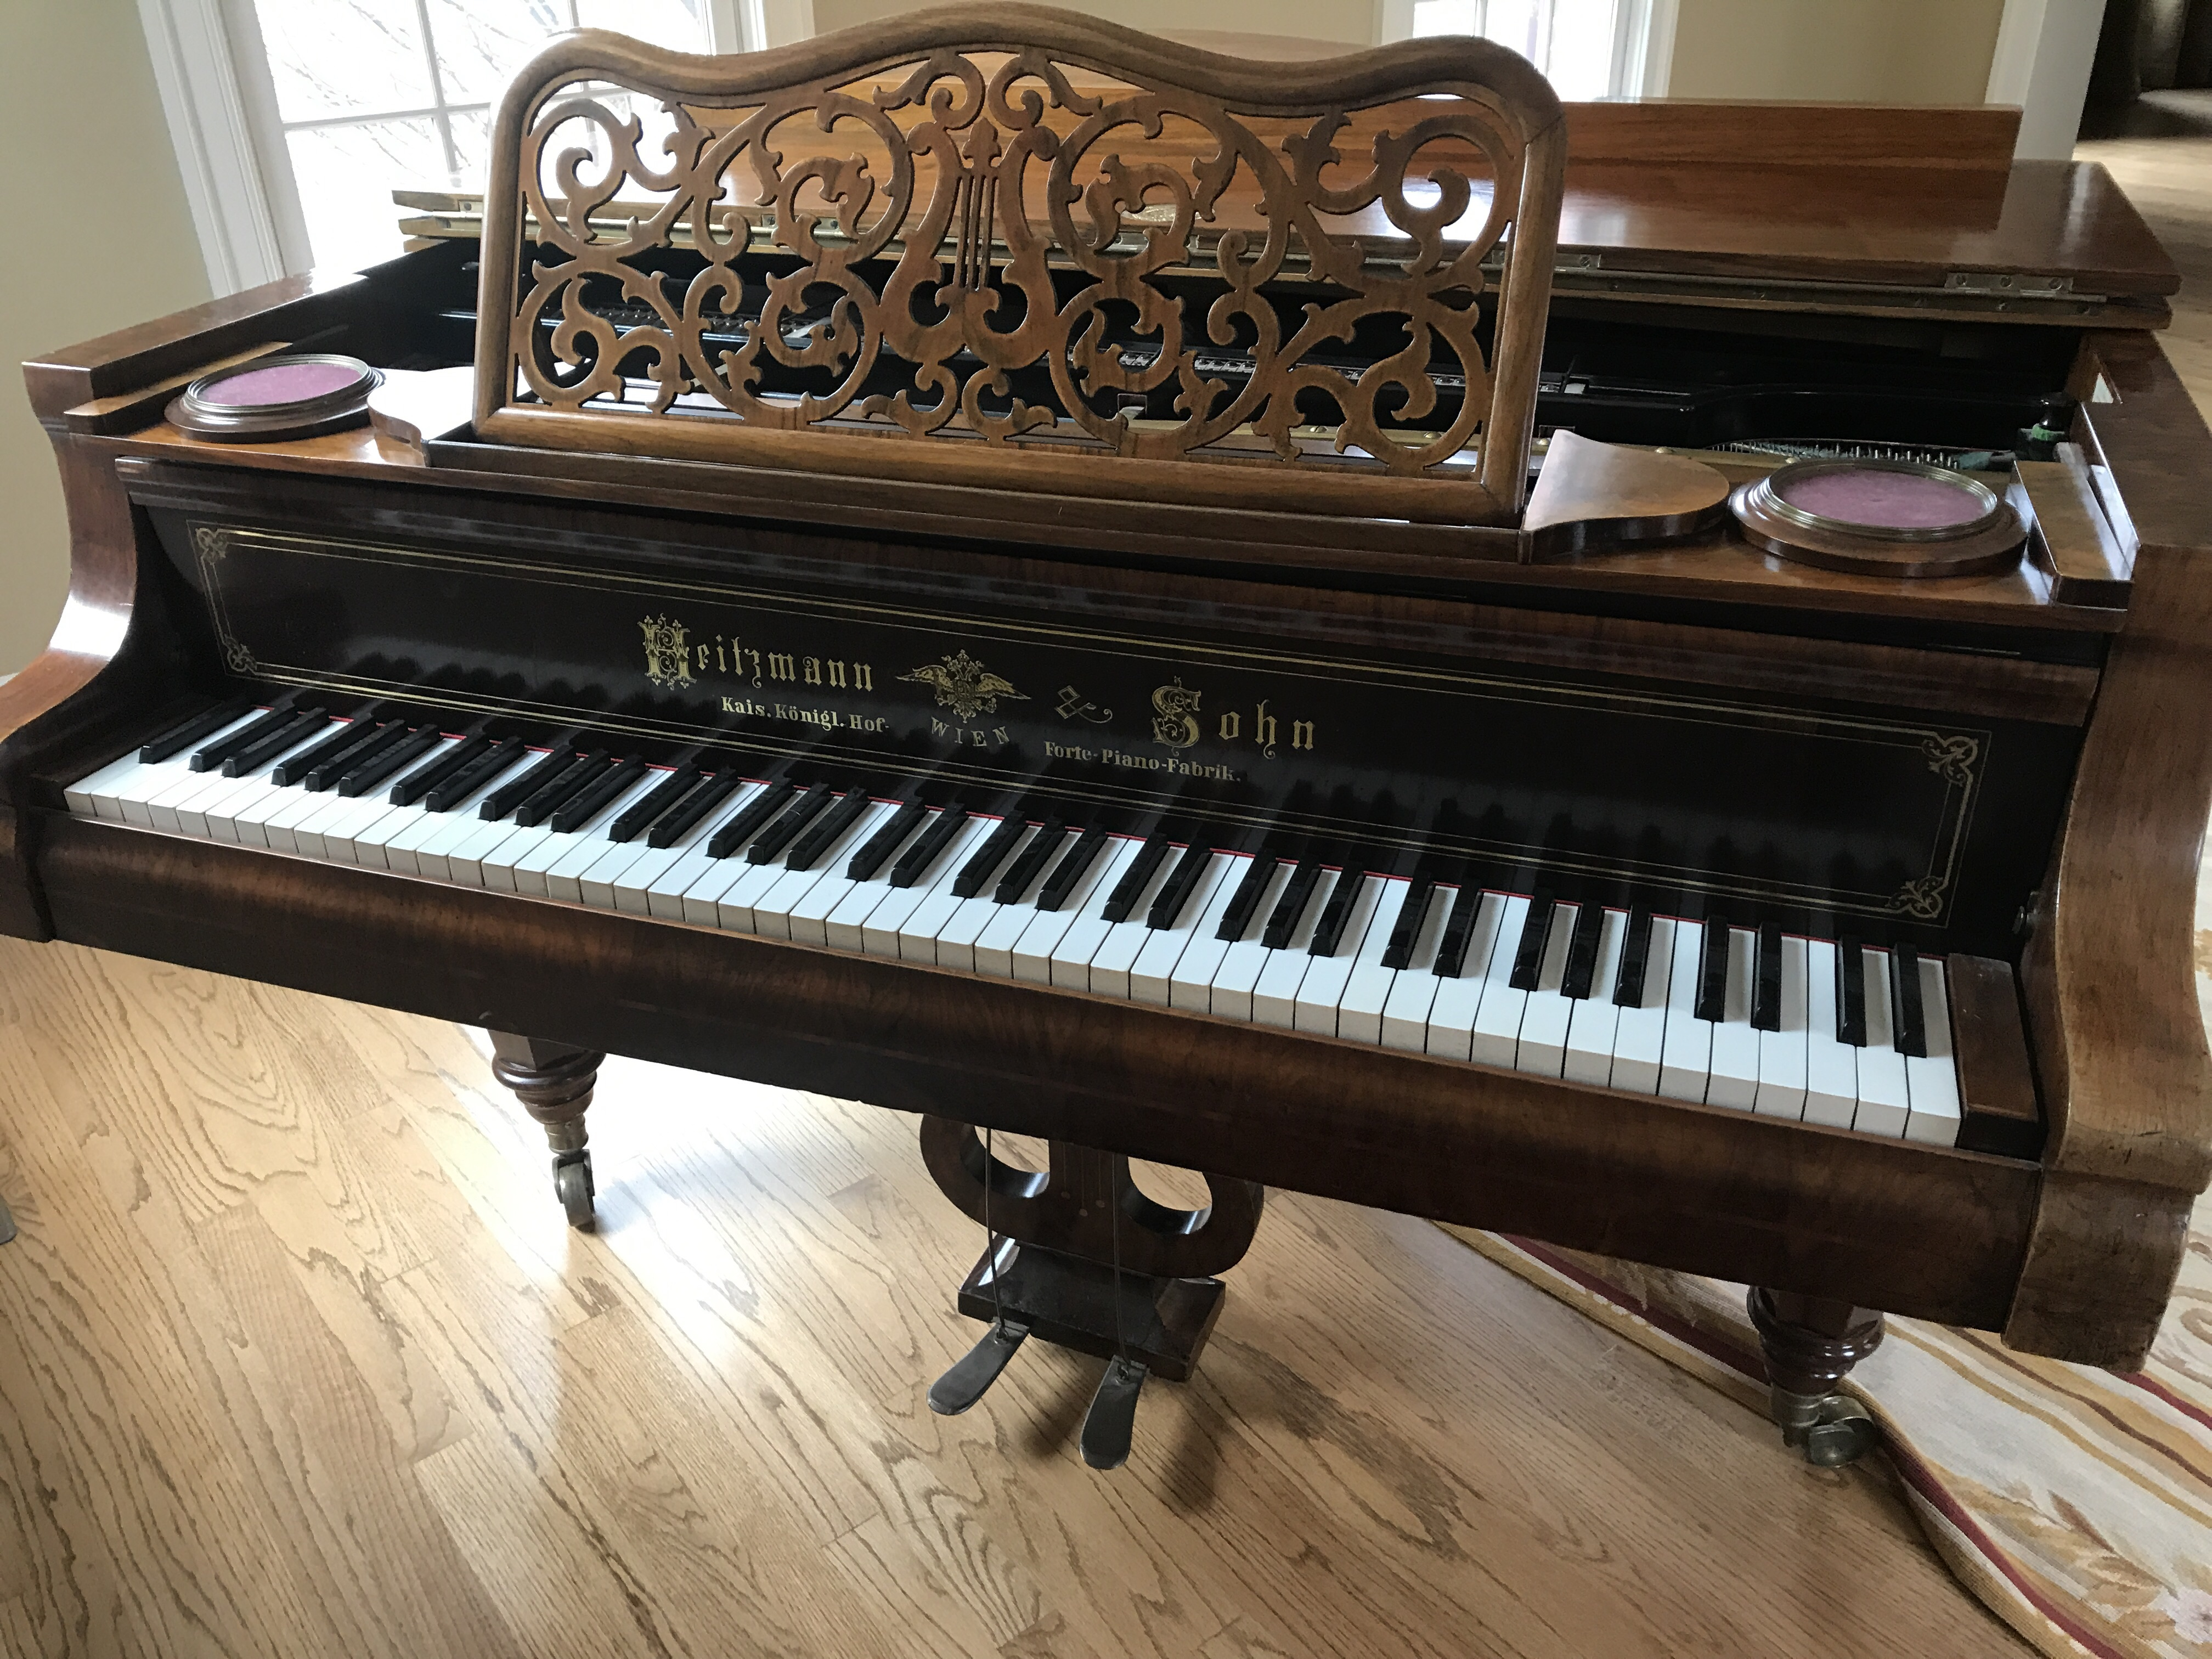 I have a Heitzmann Forte Piano serial number 4,107 that I